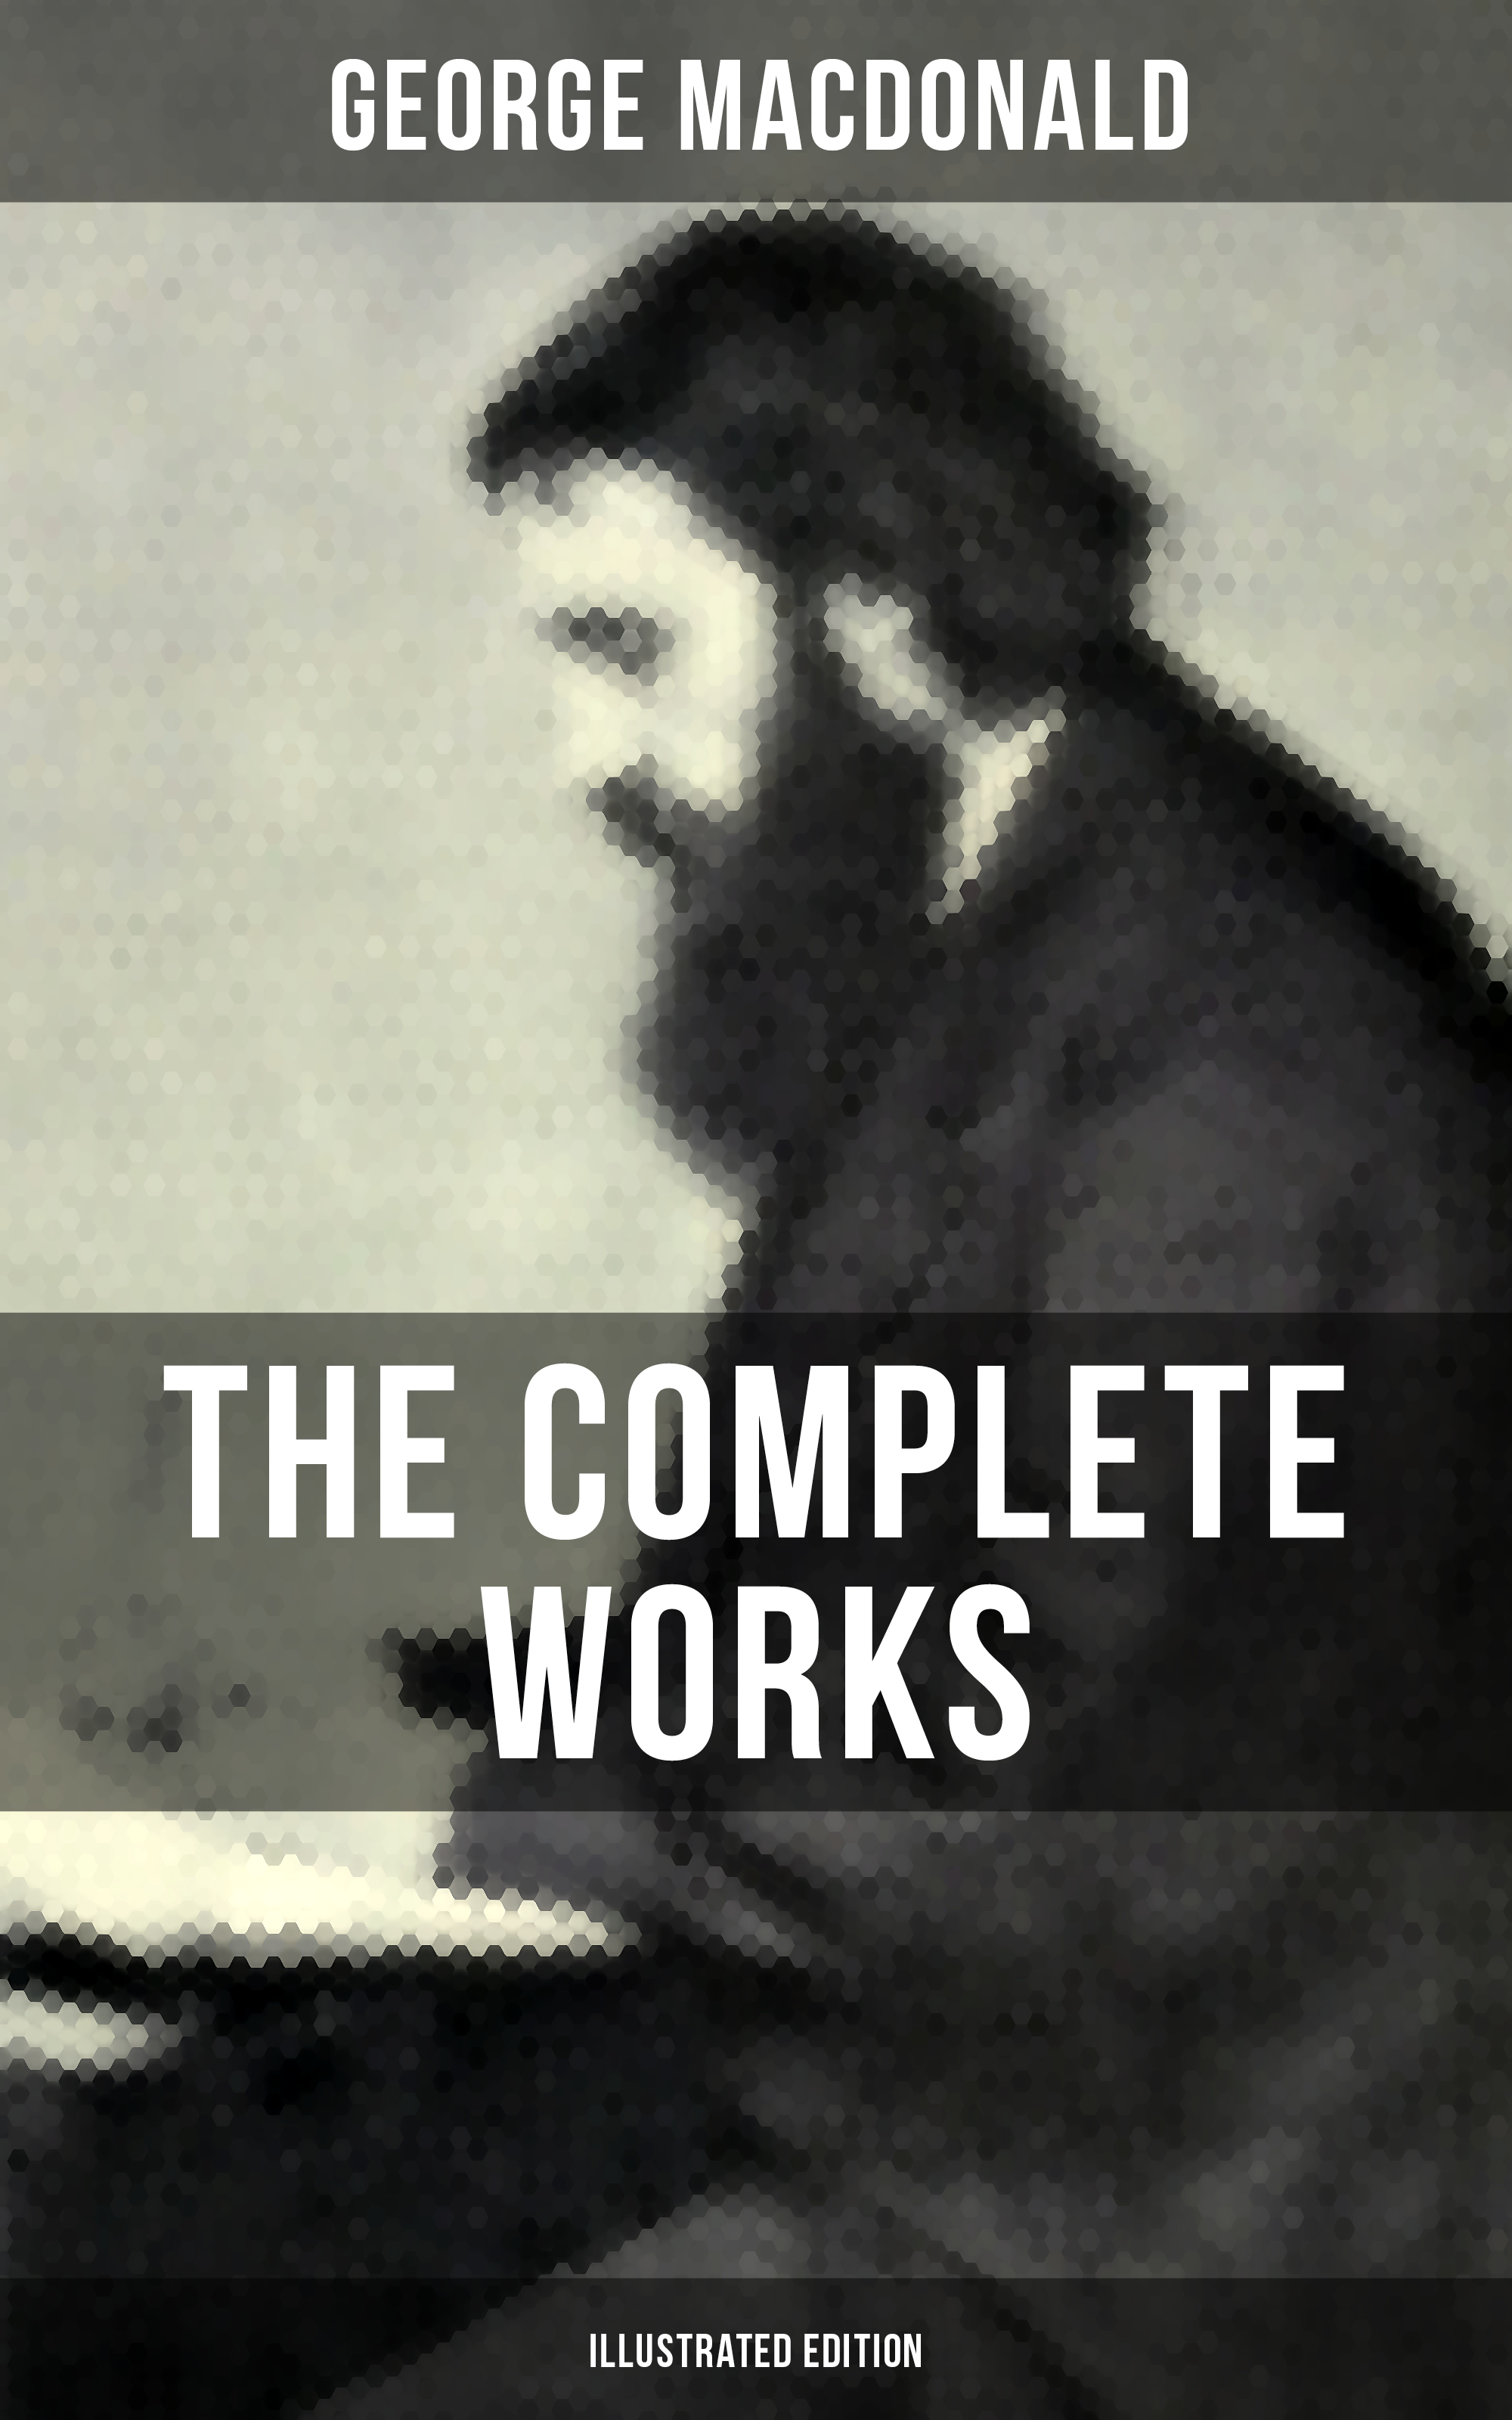 George MacDonald The Complete Works of George MacDonald (Illustrated Edition) george bull the works of george bull d d lord bishop of st david s 2